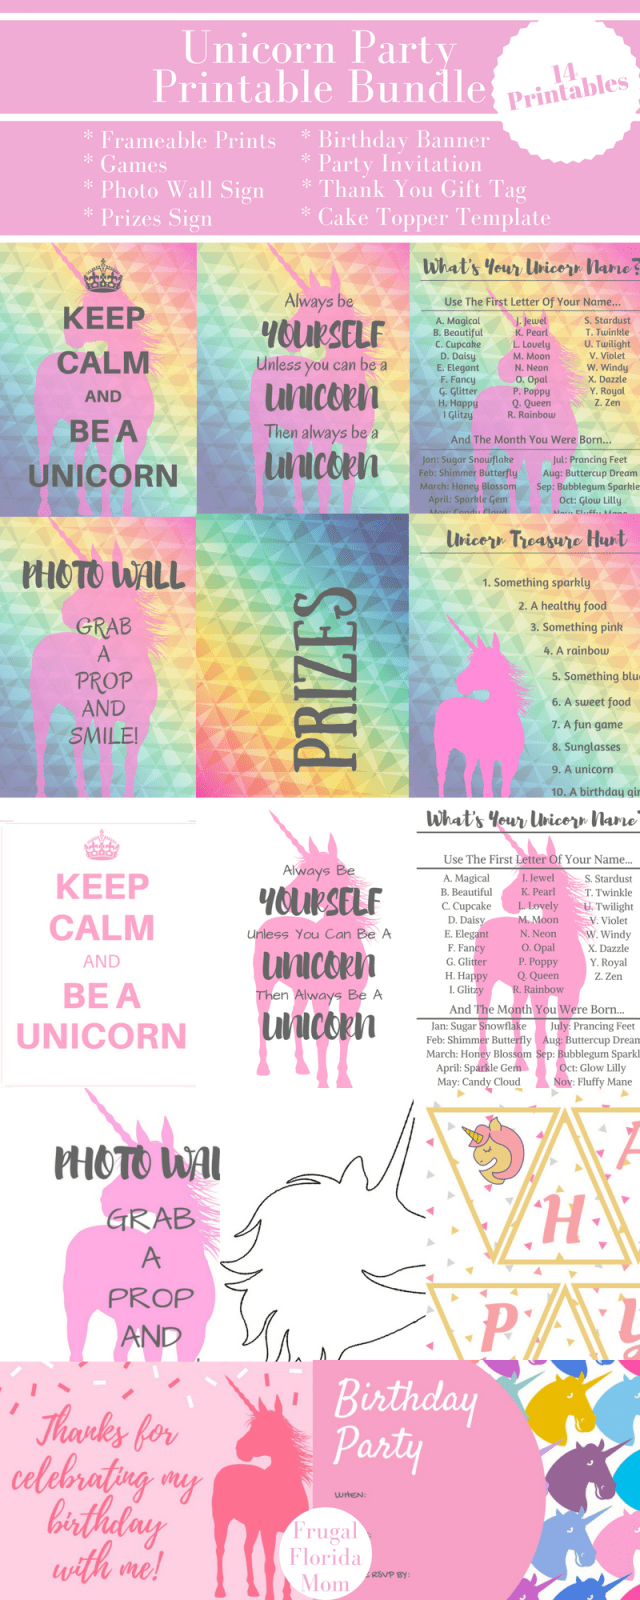 Unicorn Party Printable Bundle